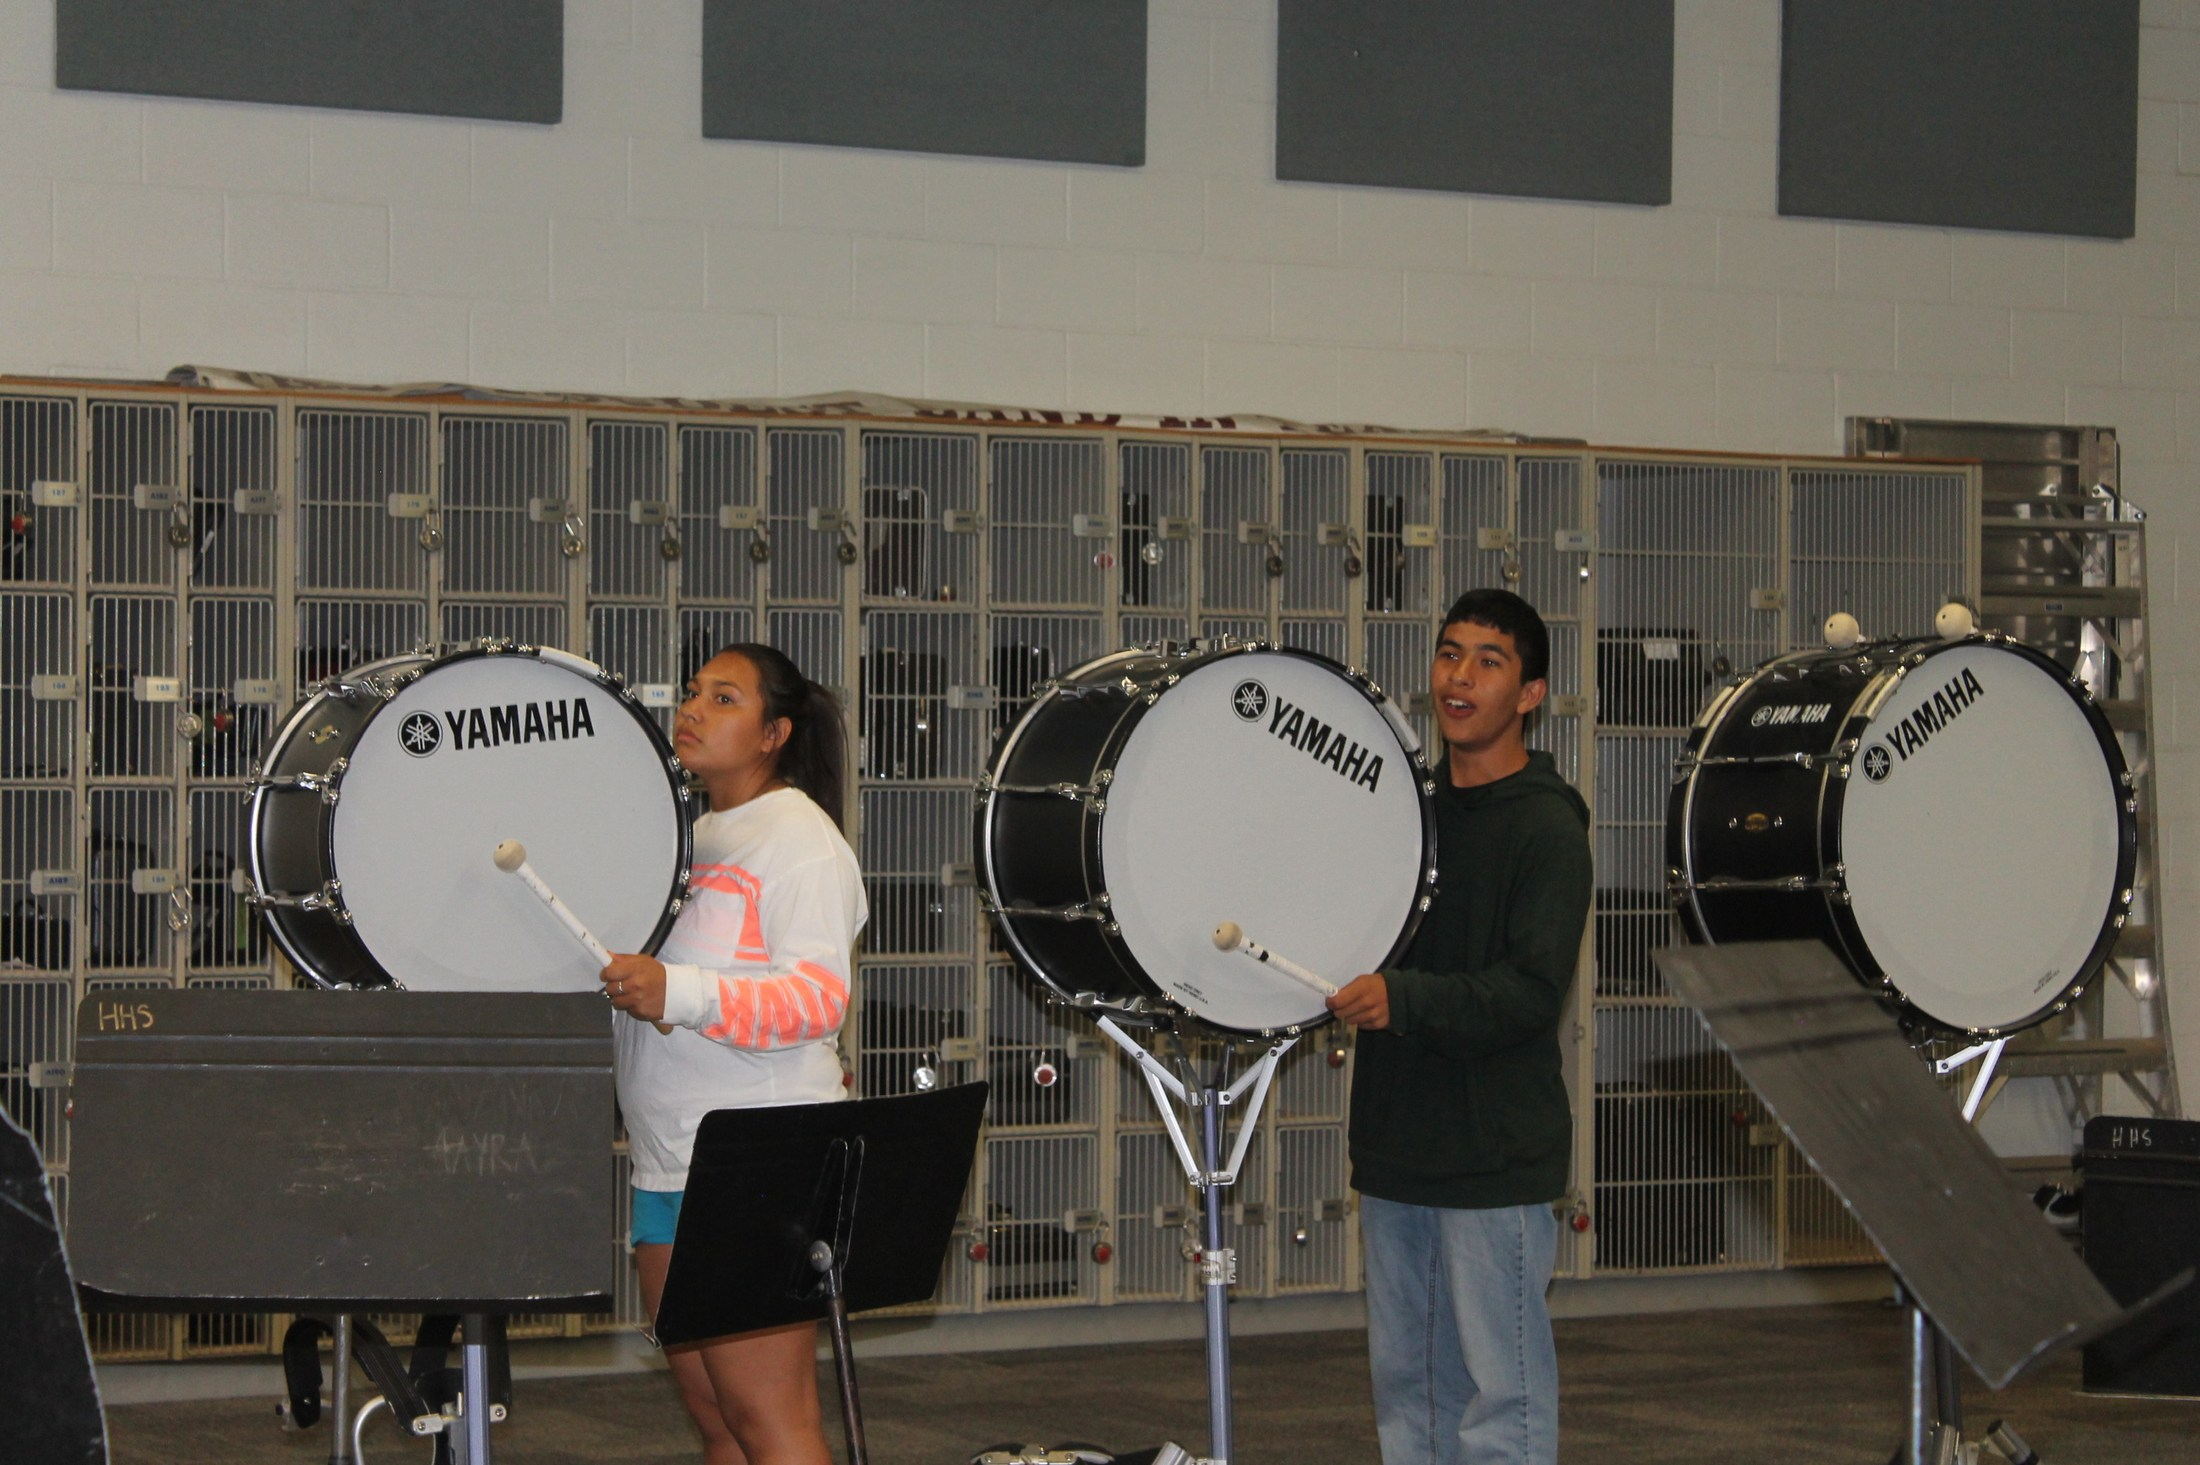 Getting out the large drums